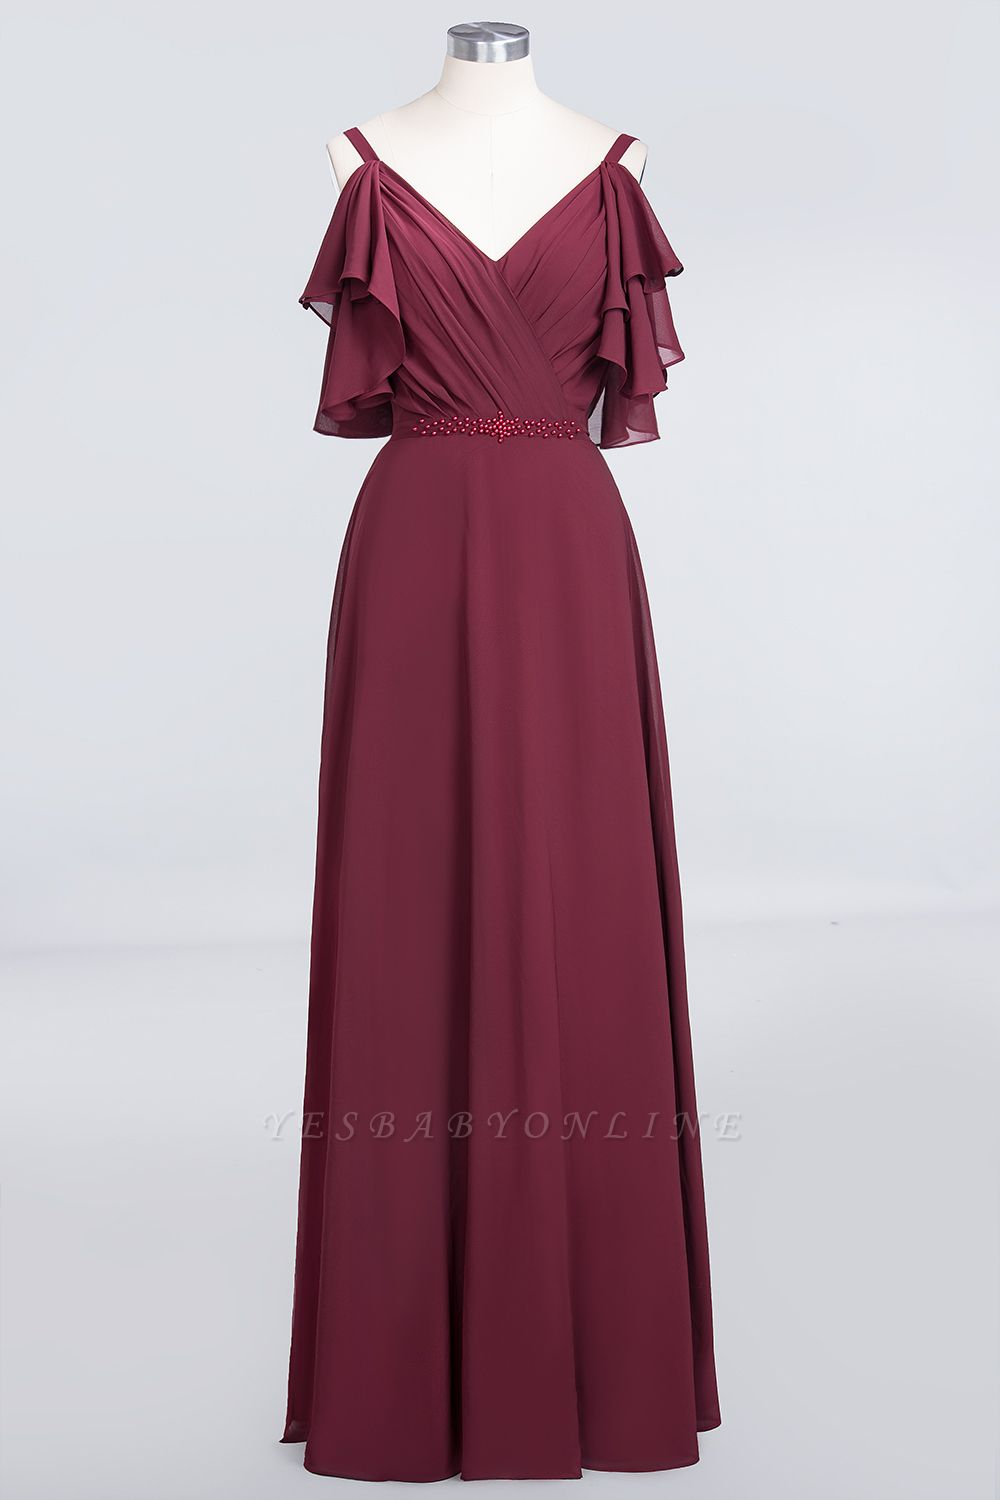 A-Line V-Neck Straps Sleeveless Ruffles Floor-Length  Bridesmaid Dress with Pearls